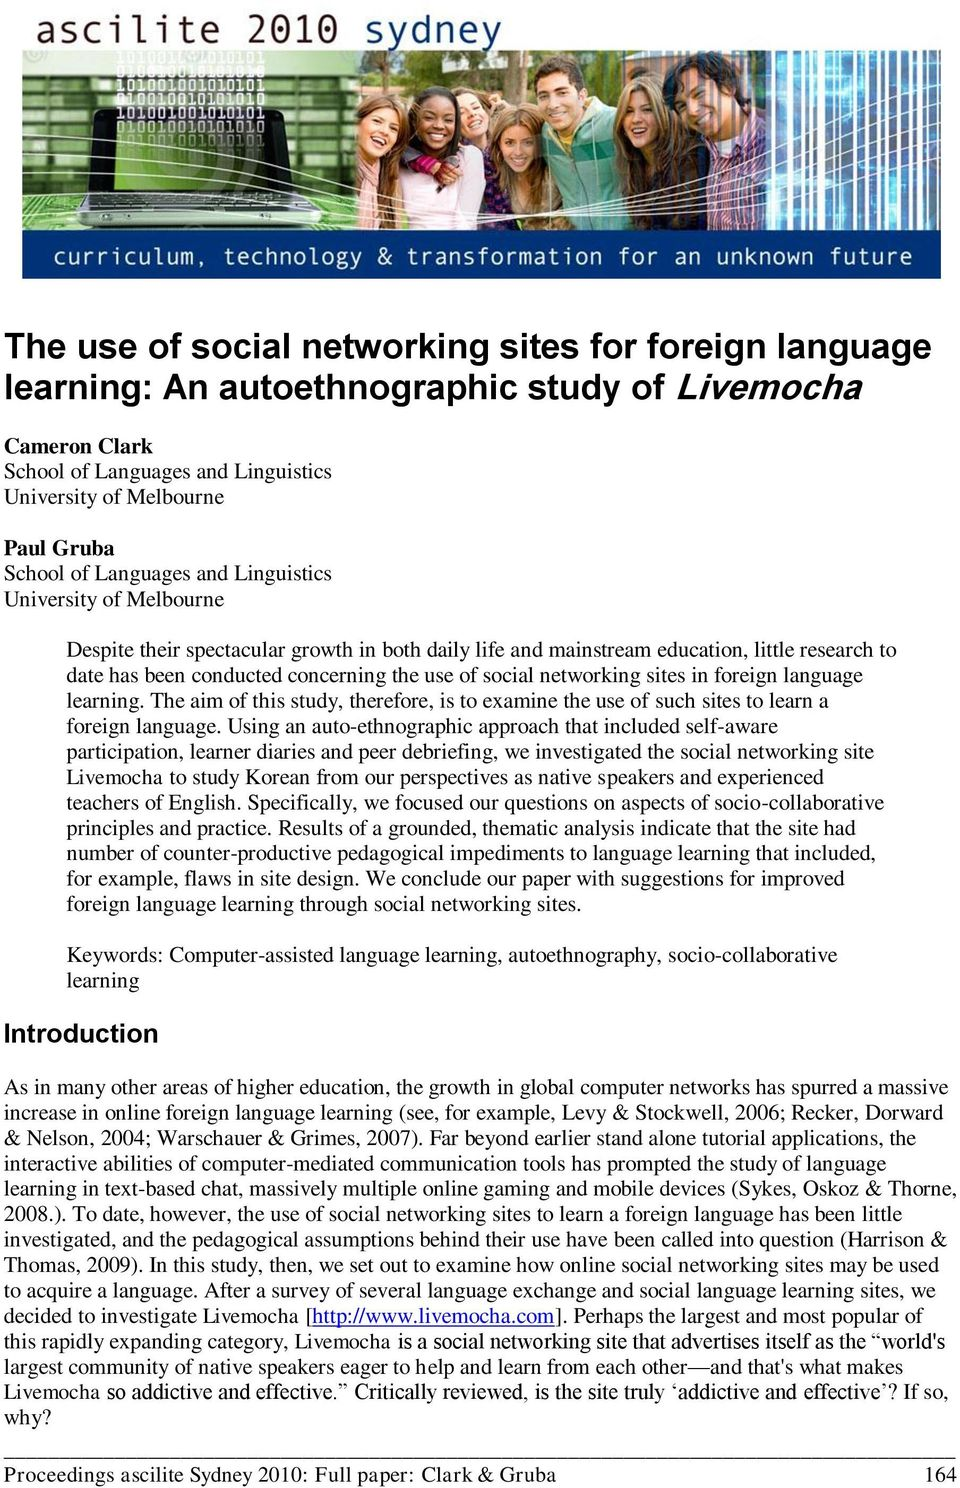 networking sites in foreign language learning. The aim of this study, therefore, is to examine the use of such sites to learn a foreign language.